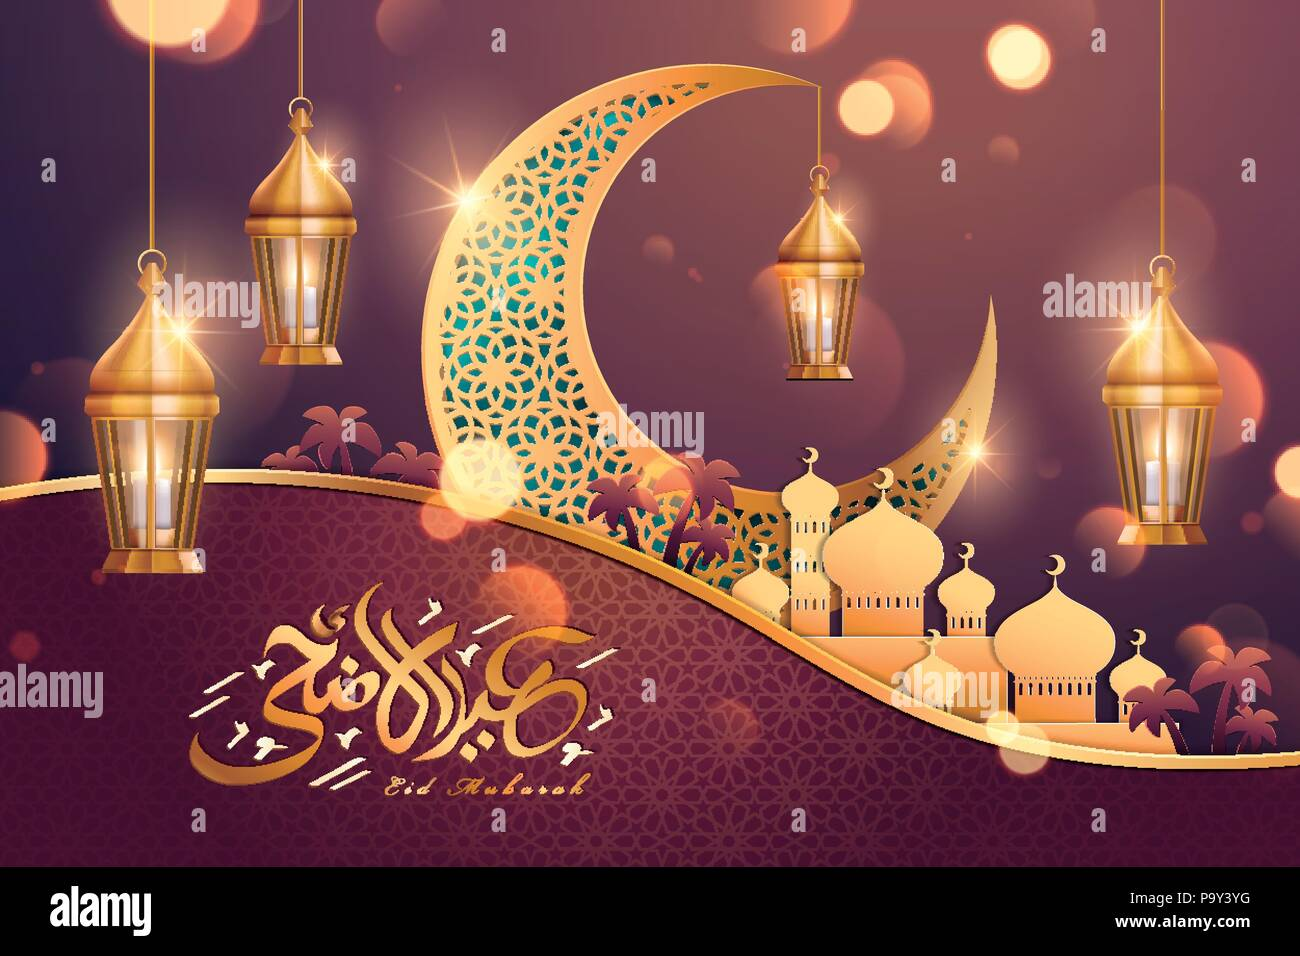 Eid Al Adha Greeting Card With Golden Crescent And Mosque On